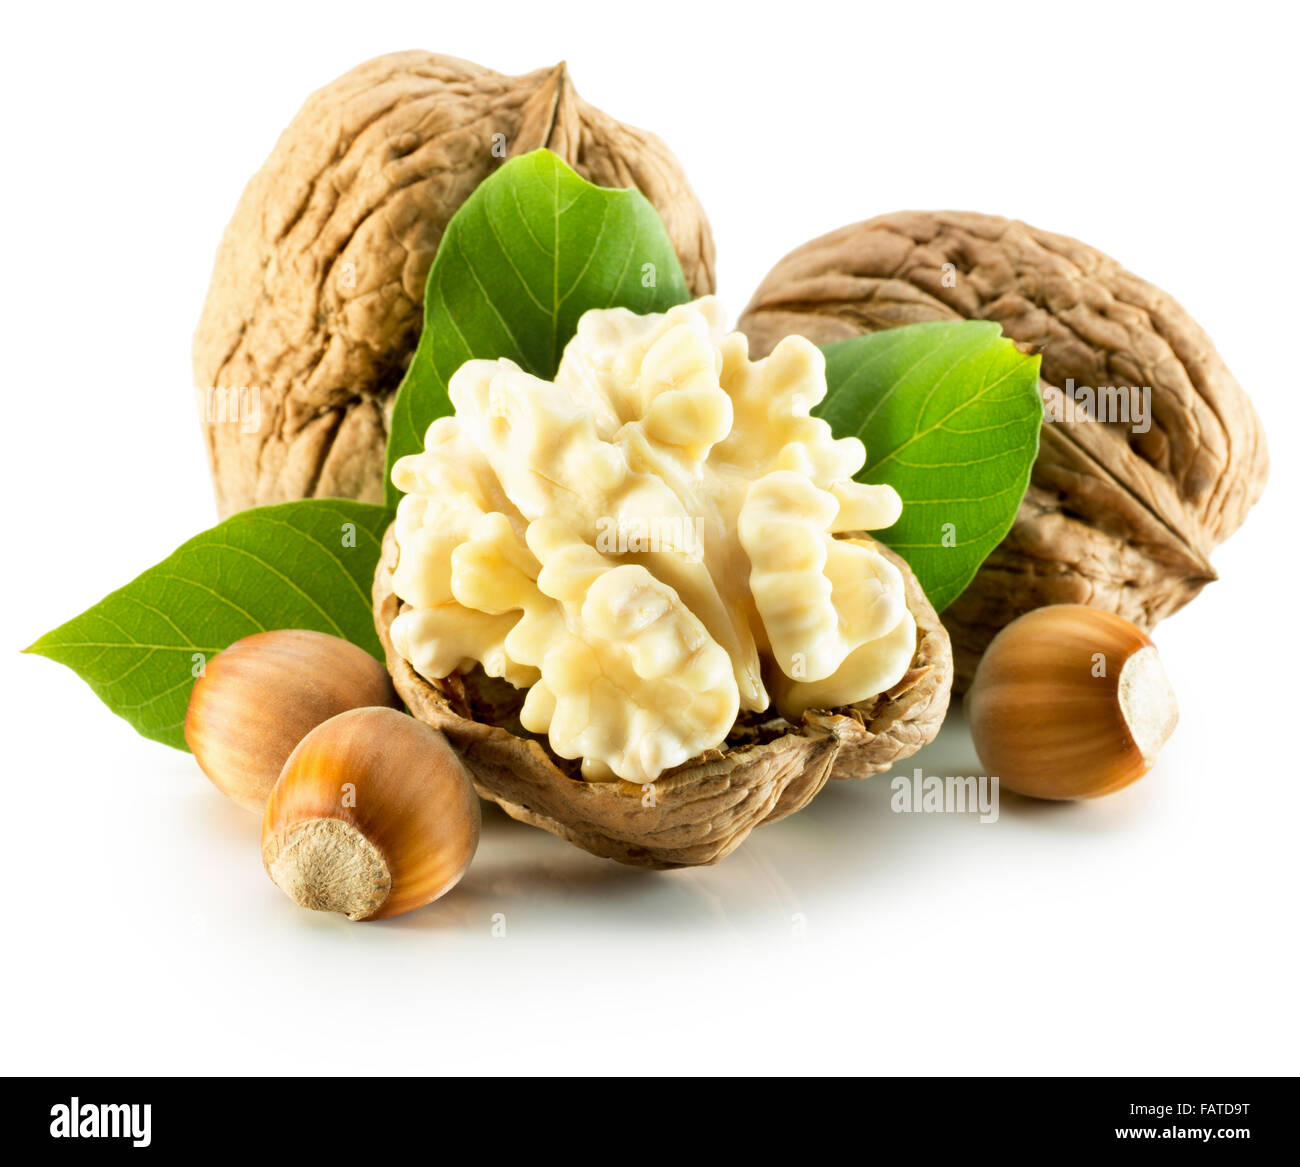 Walnuts Qand Hazelnuts Isolated On The White Background